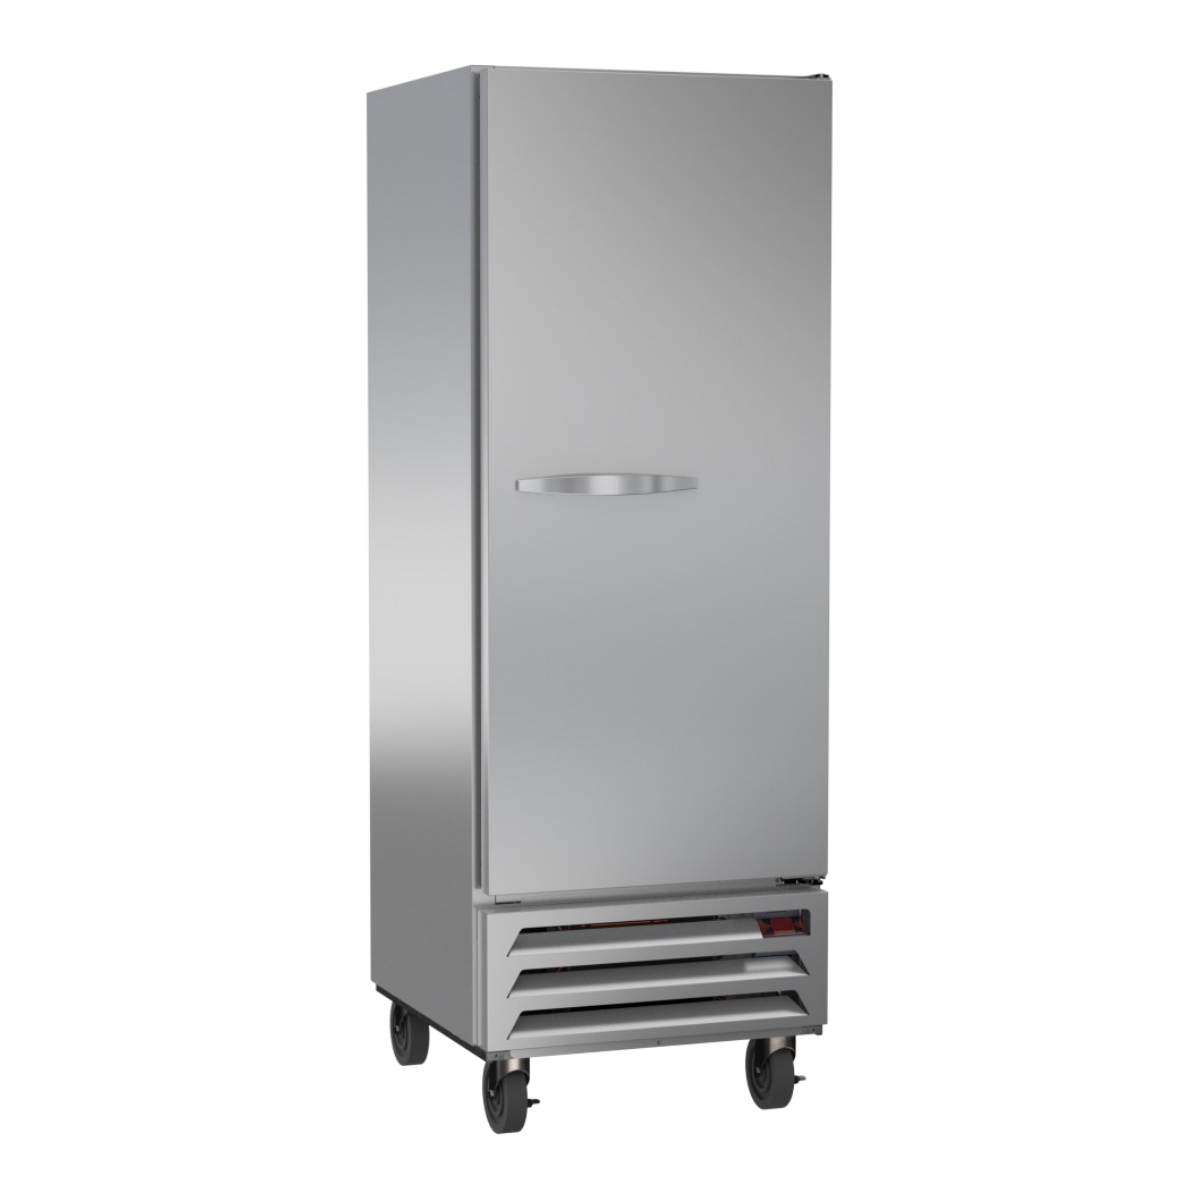 Beverage Air HBR12HC-1 Reach-in Refrigerator